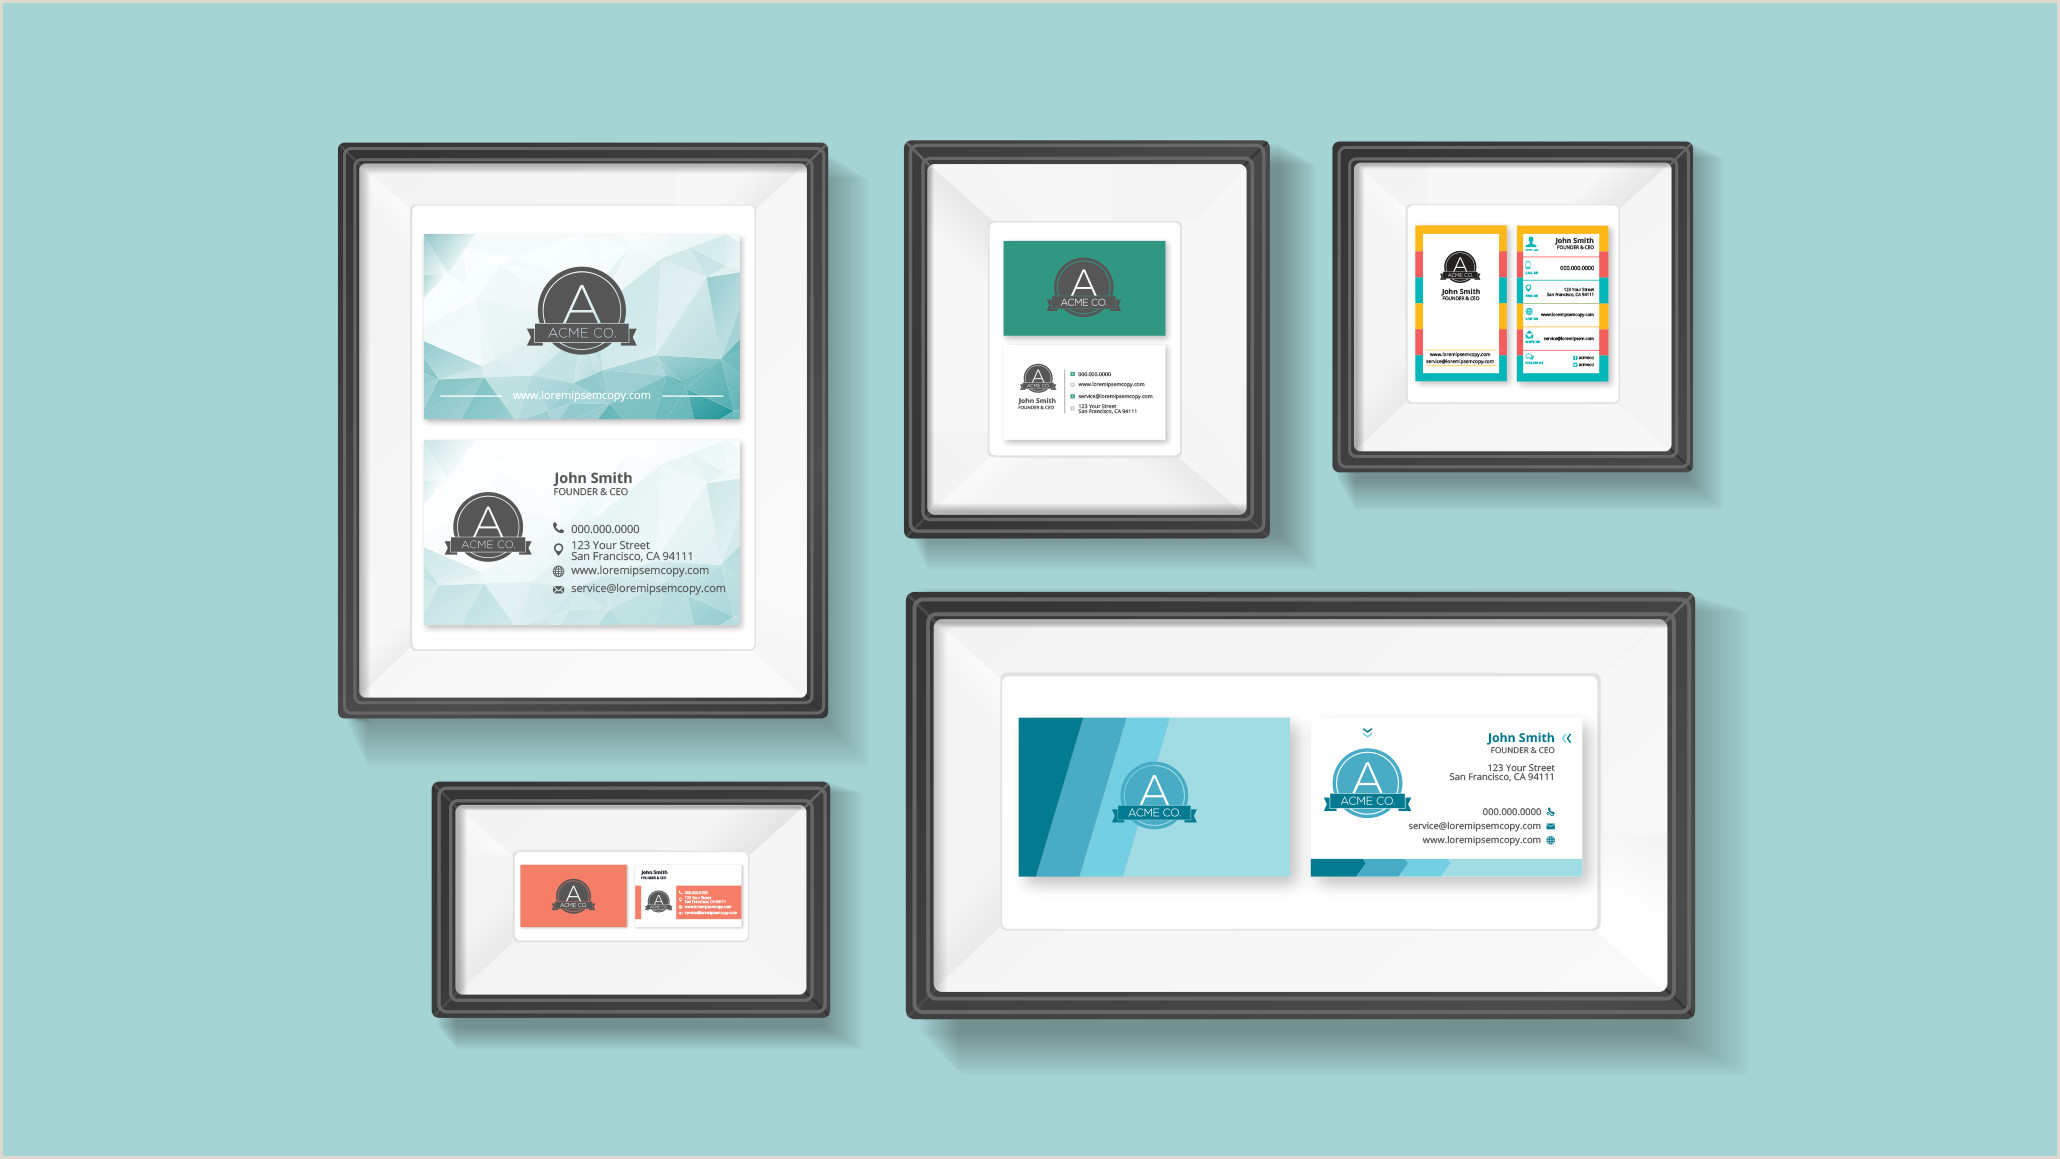 Best Business Card Designs 28 Top Business Card Ideas That Seal The Deal